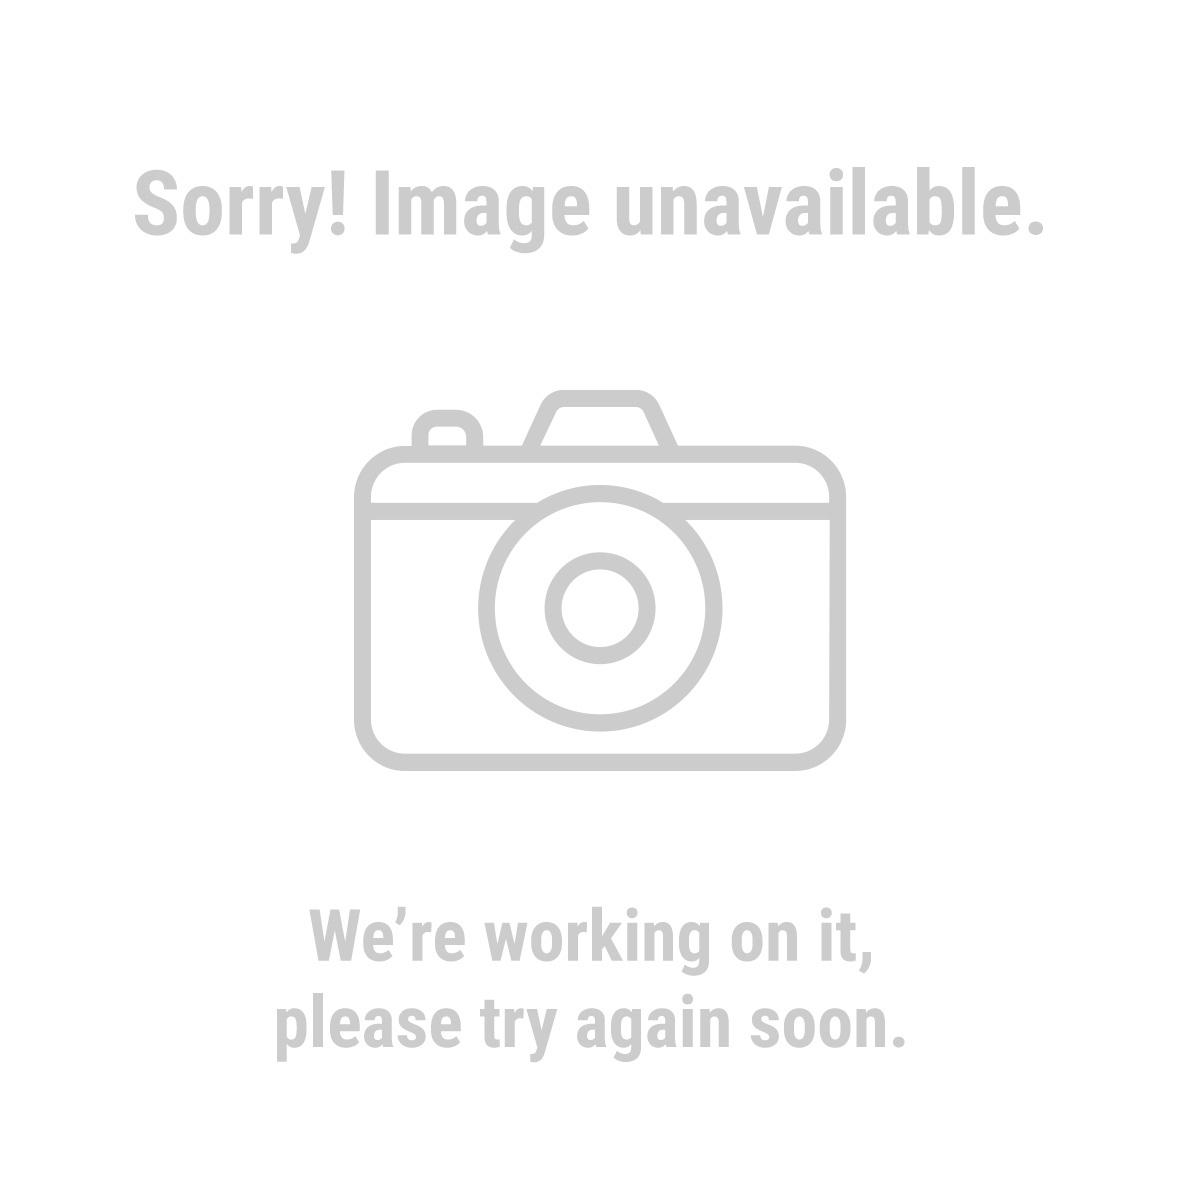 Central Pneumatic 69669 1.8 Horsepower, 26 Gallon, 150 PSI PSI Oilless Air Compressor